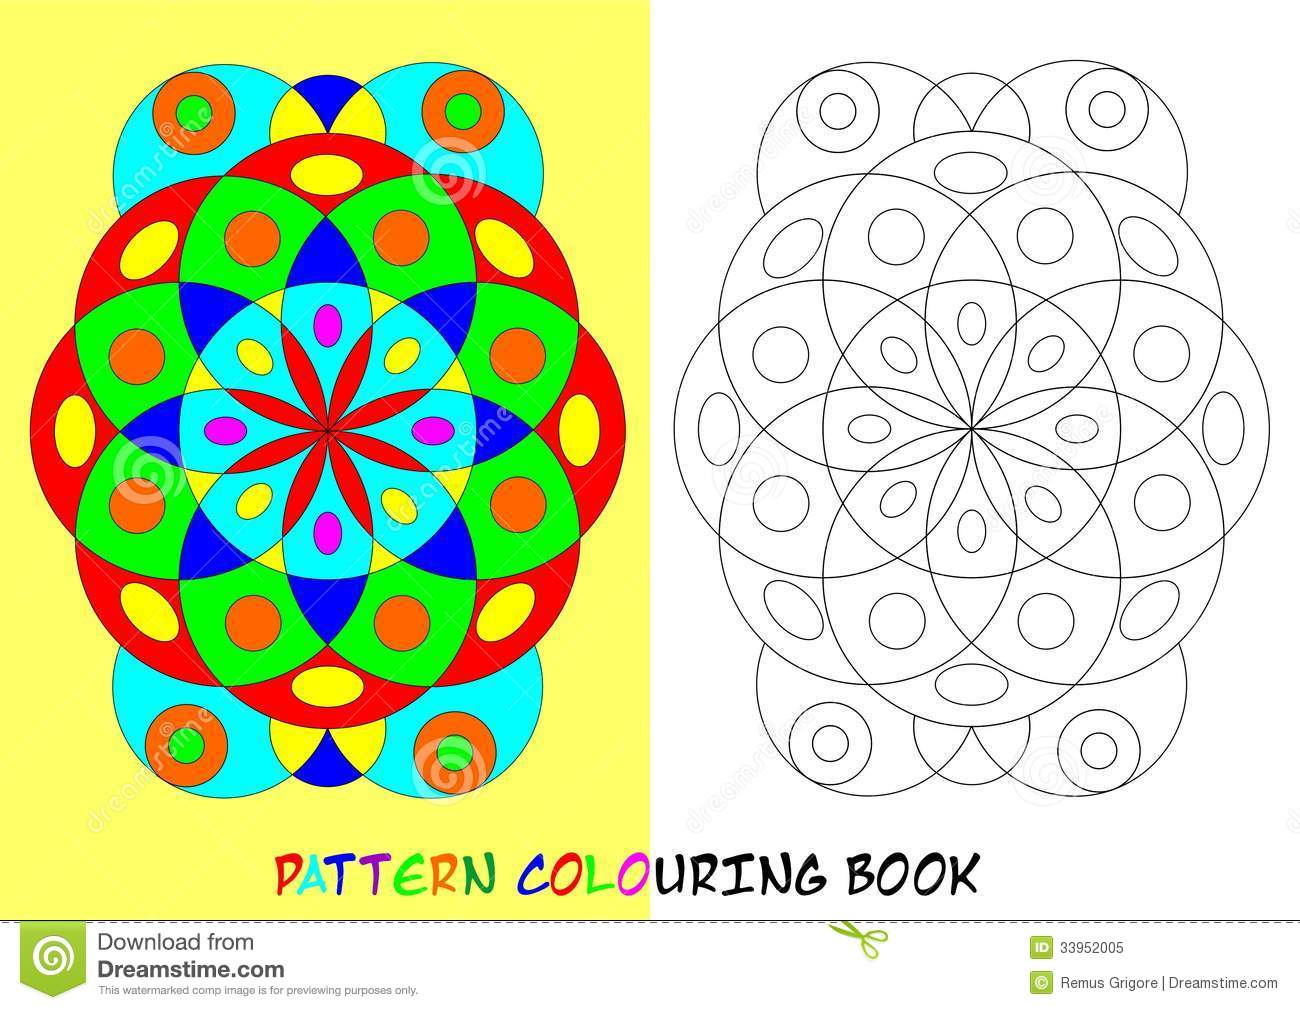 Colouring book - Pattern Colouring Book Cdr Format Royalty Free Stock Photo